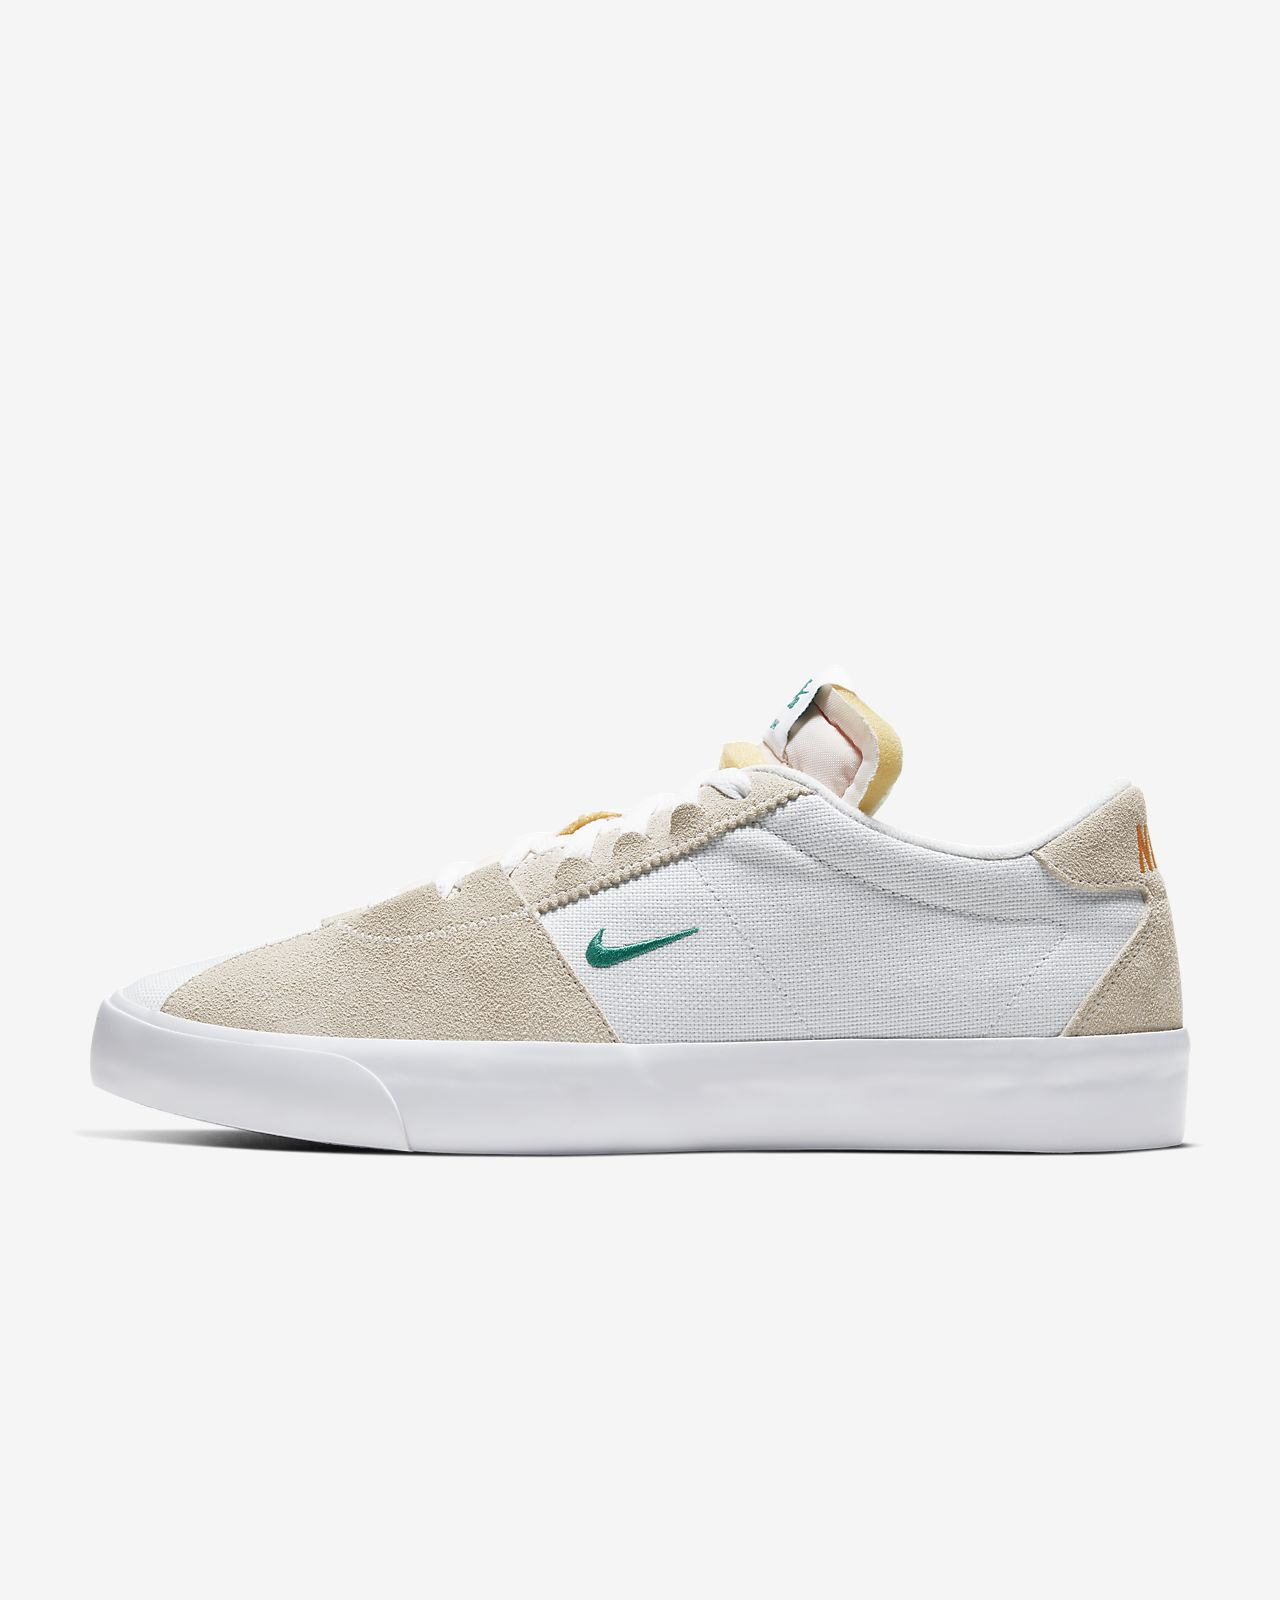 Nike SB Air Zoom Bruin Edge Skateboardschuh